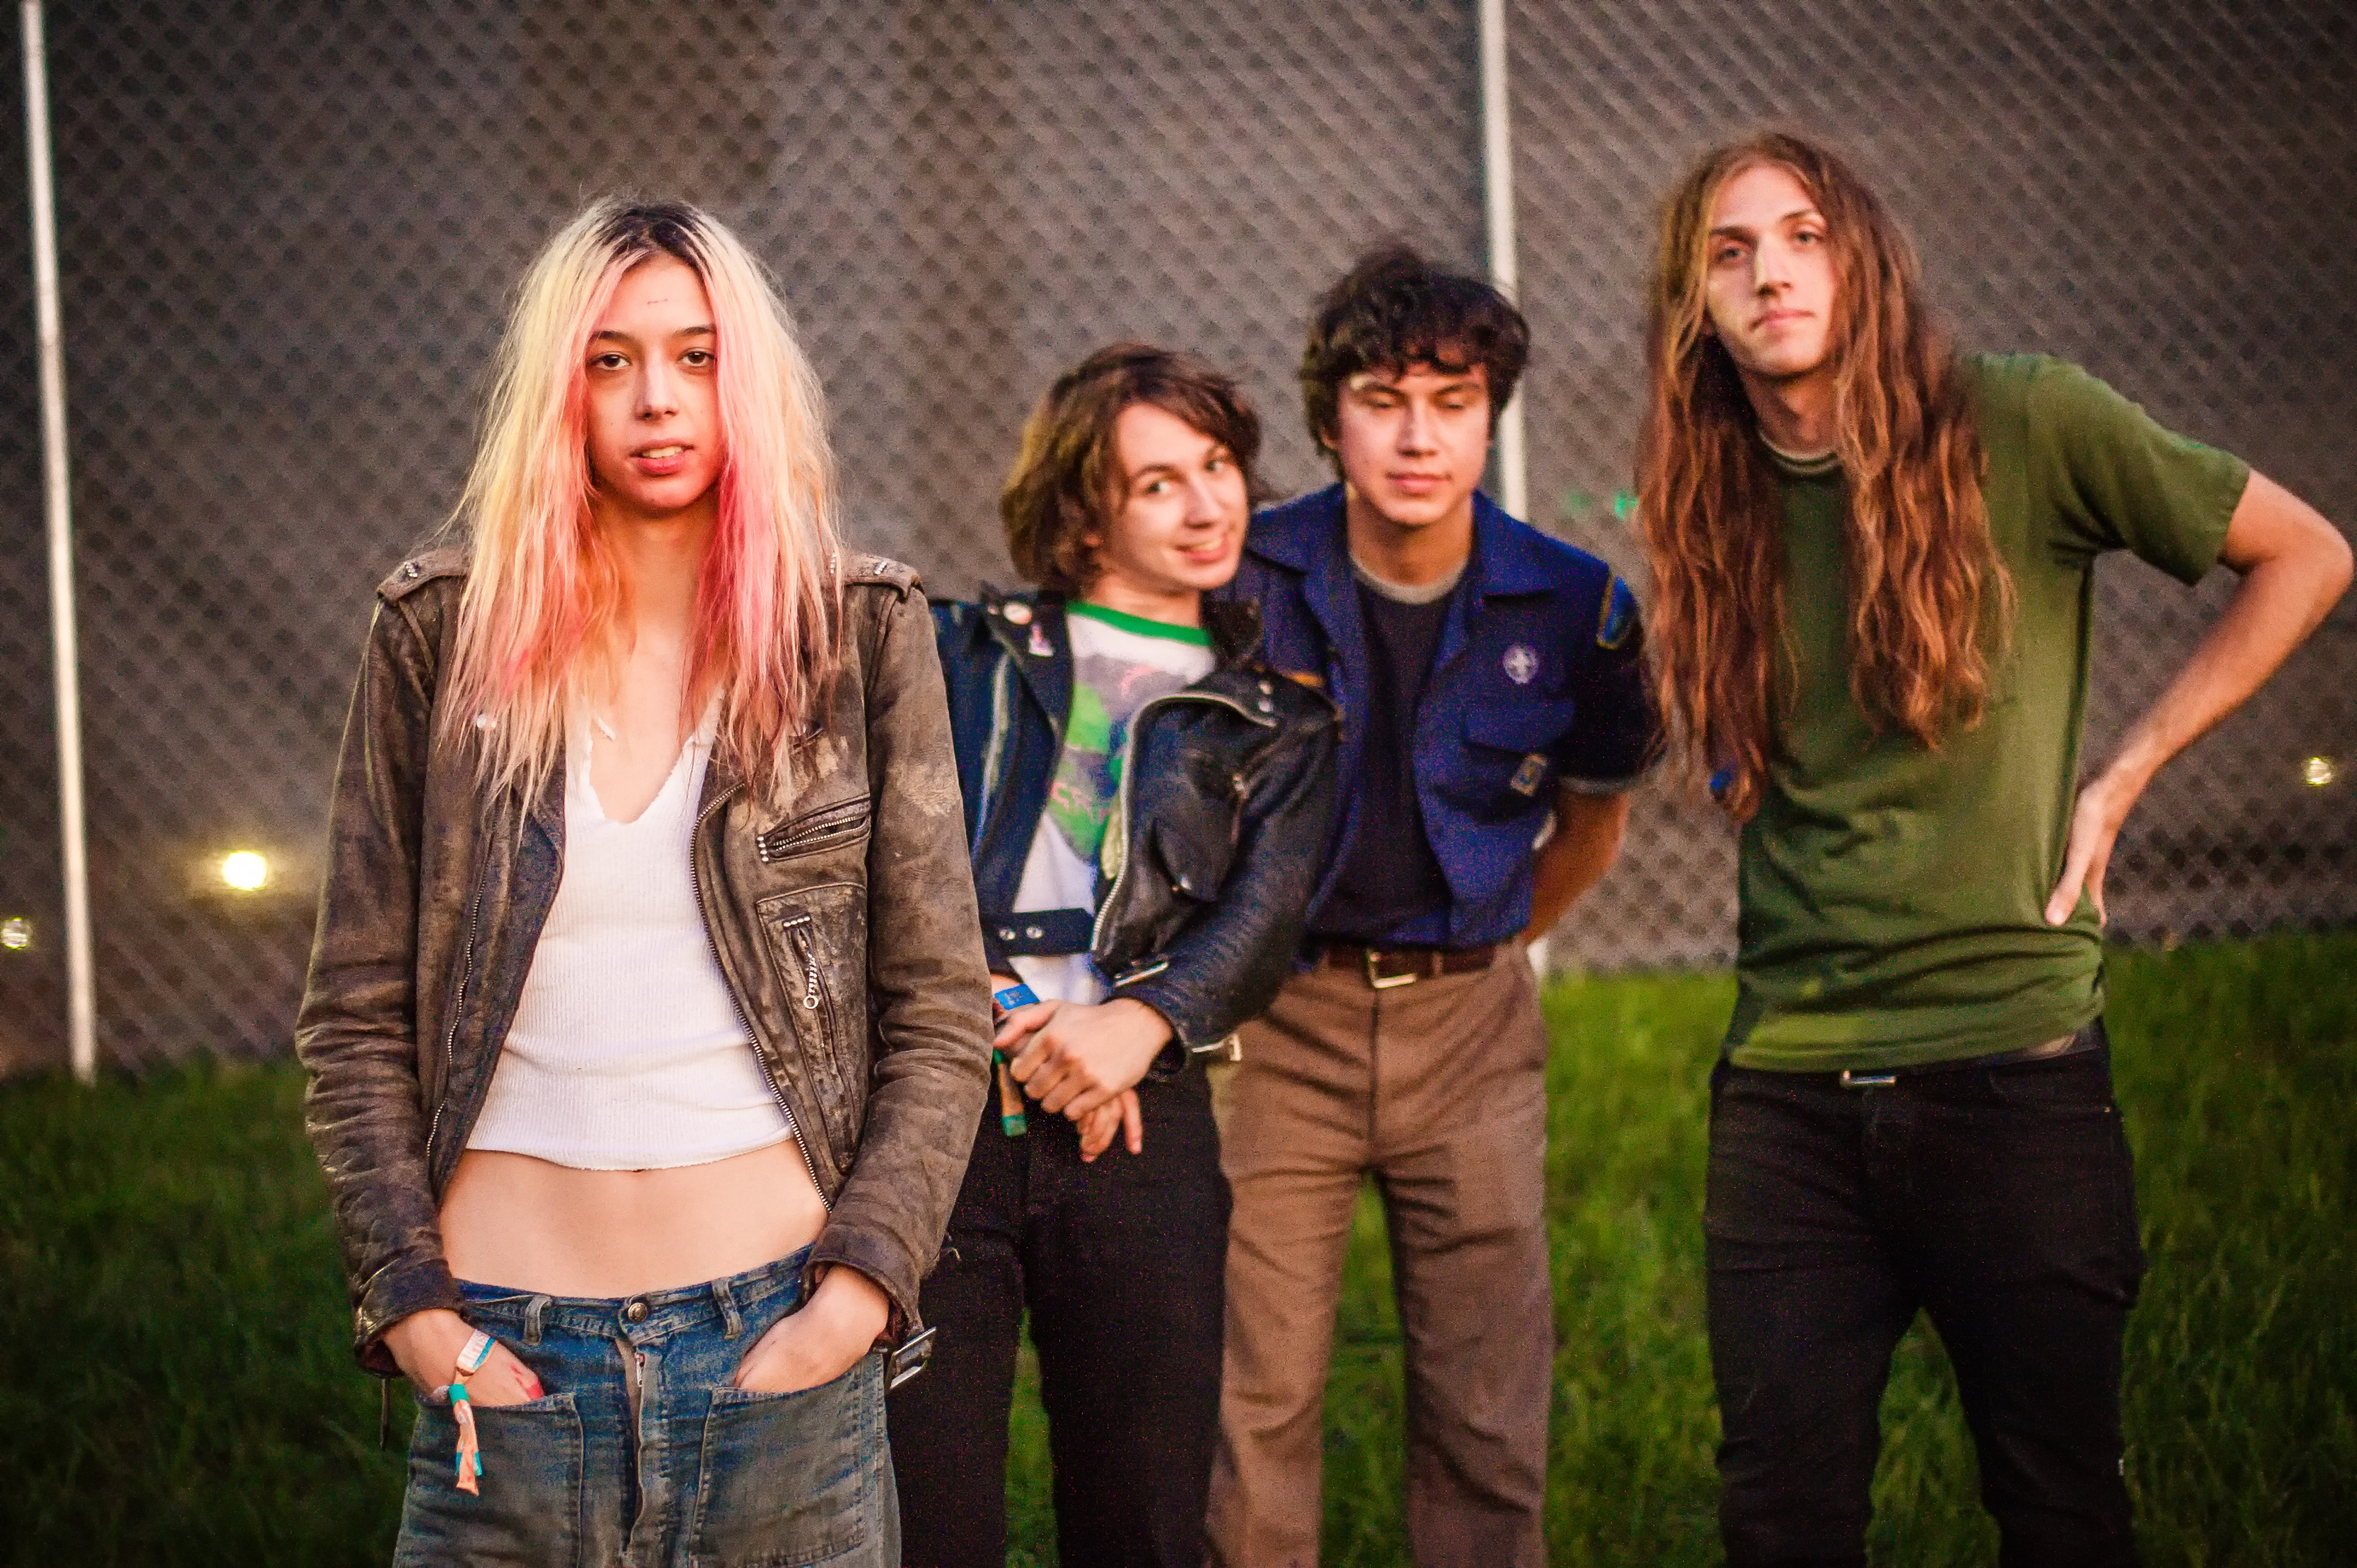 INTERVIEW: Starcrawler discuss new album and working with Ryan Adams